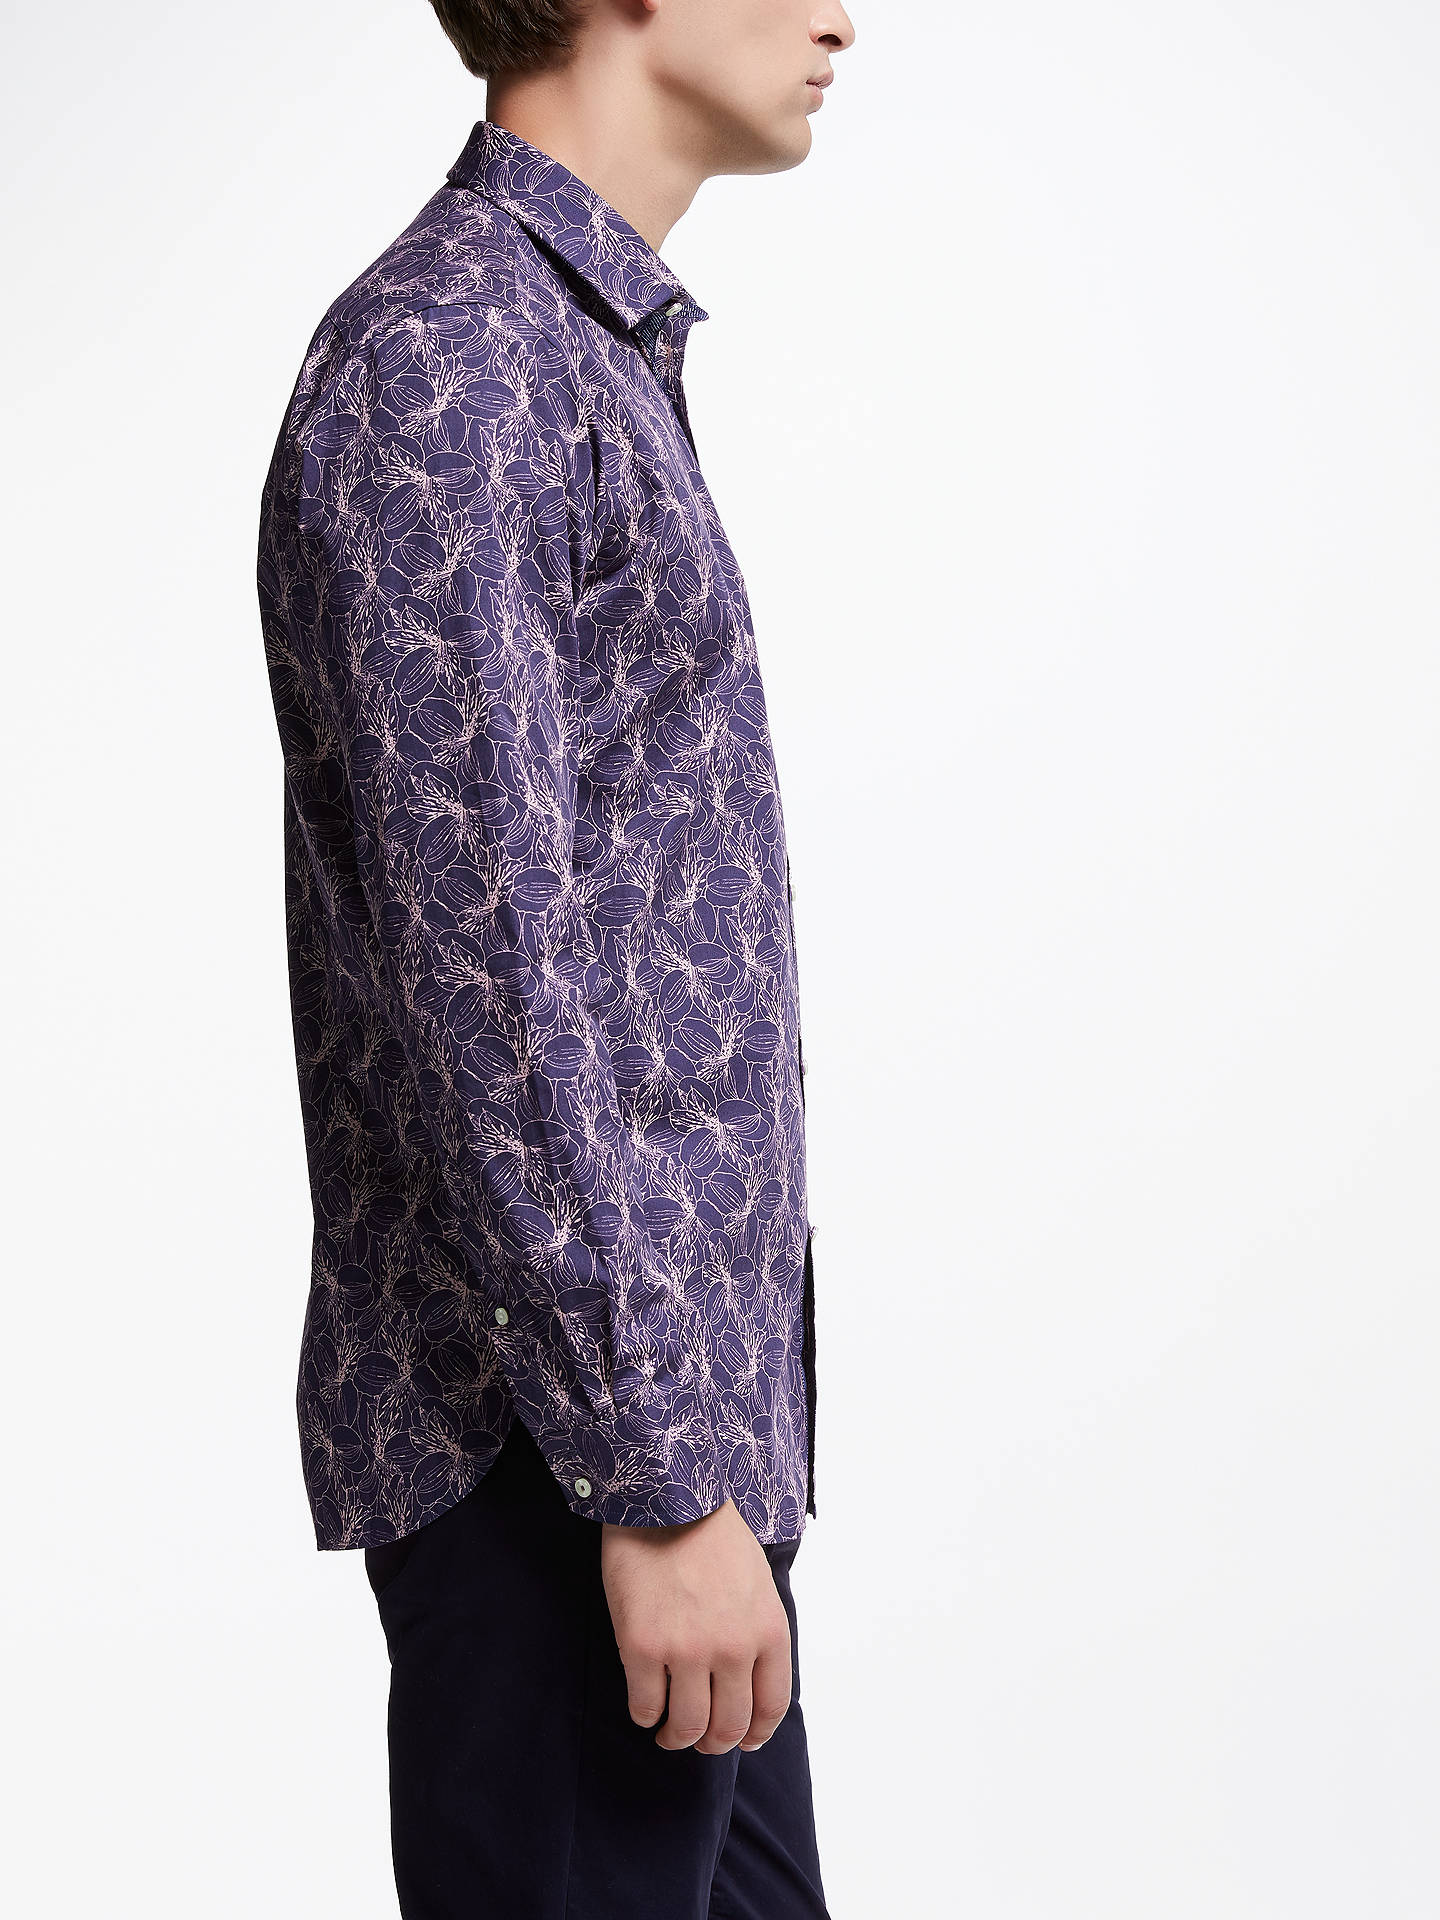 BuyTed Baker Farms Floral Print Shirt, Purple, 17 Online at johnlewis.com